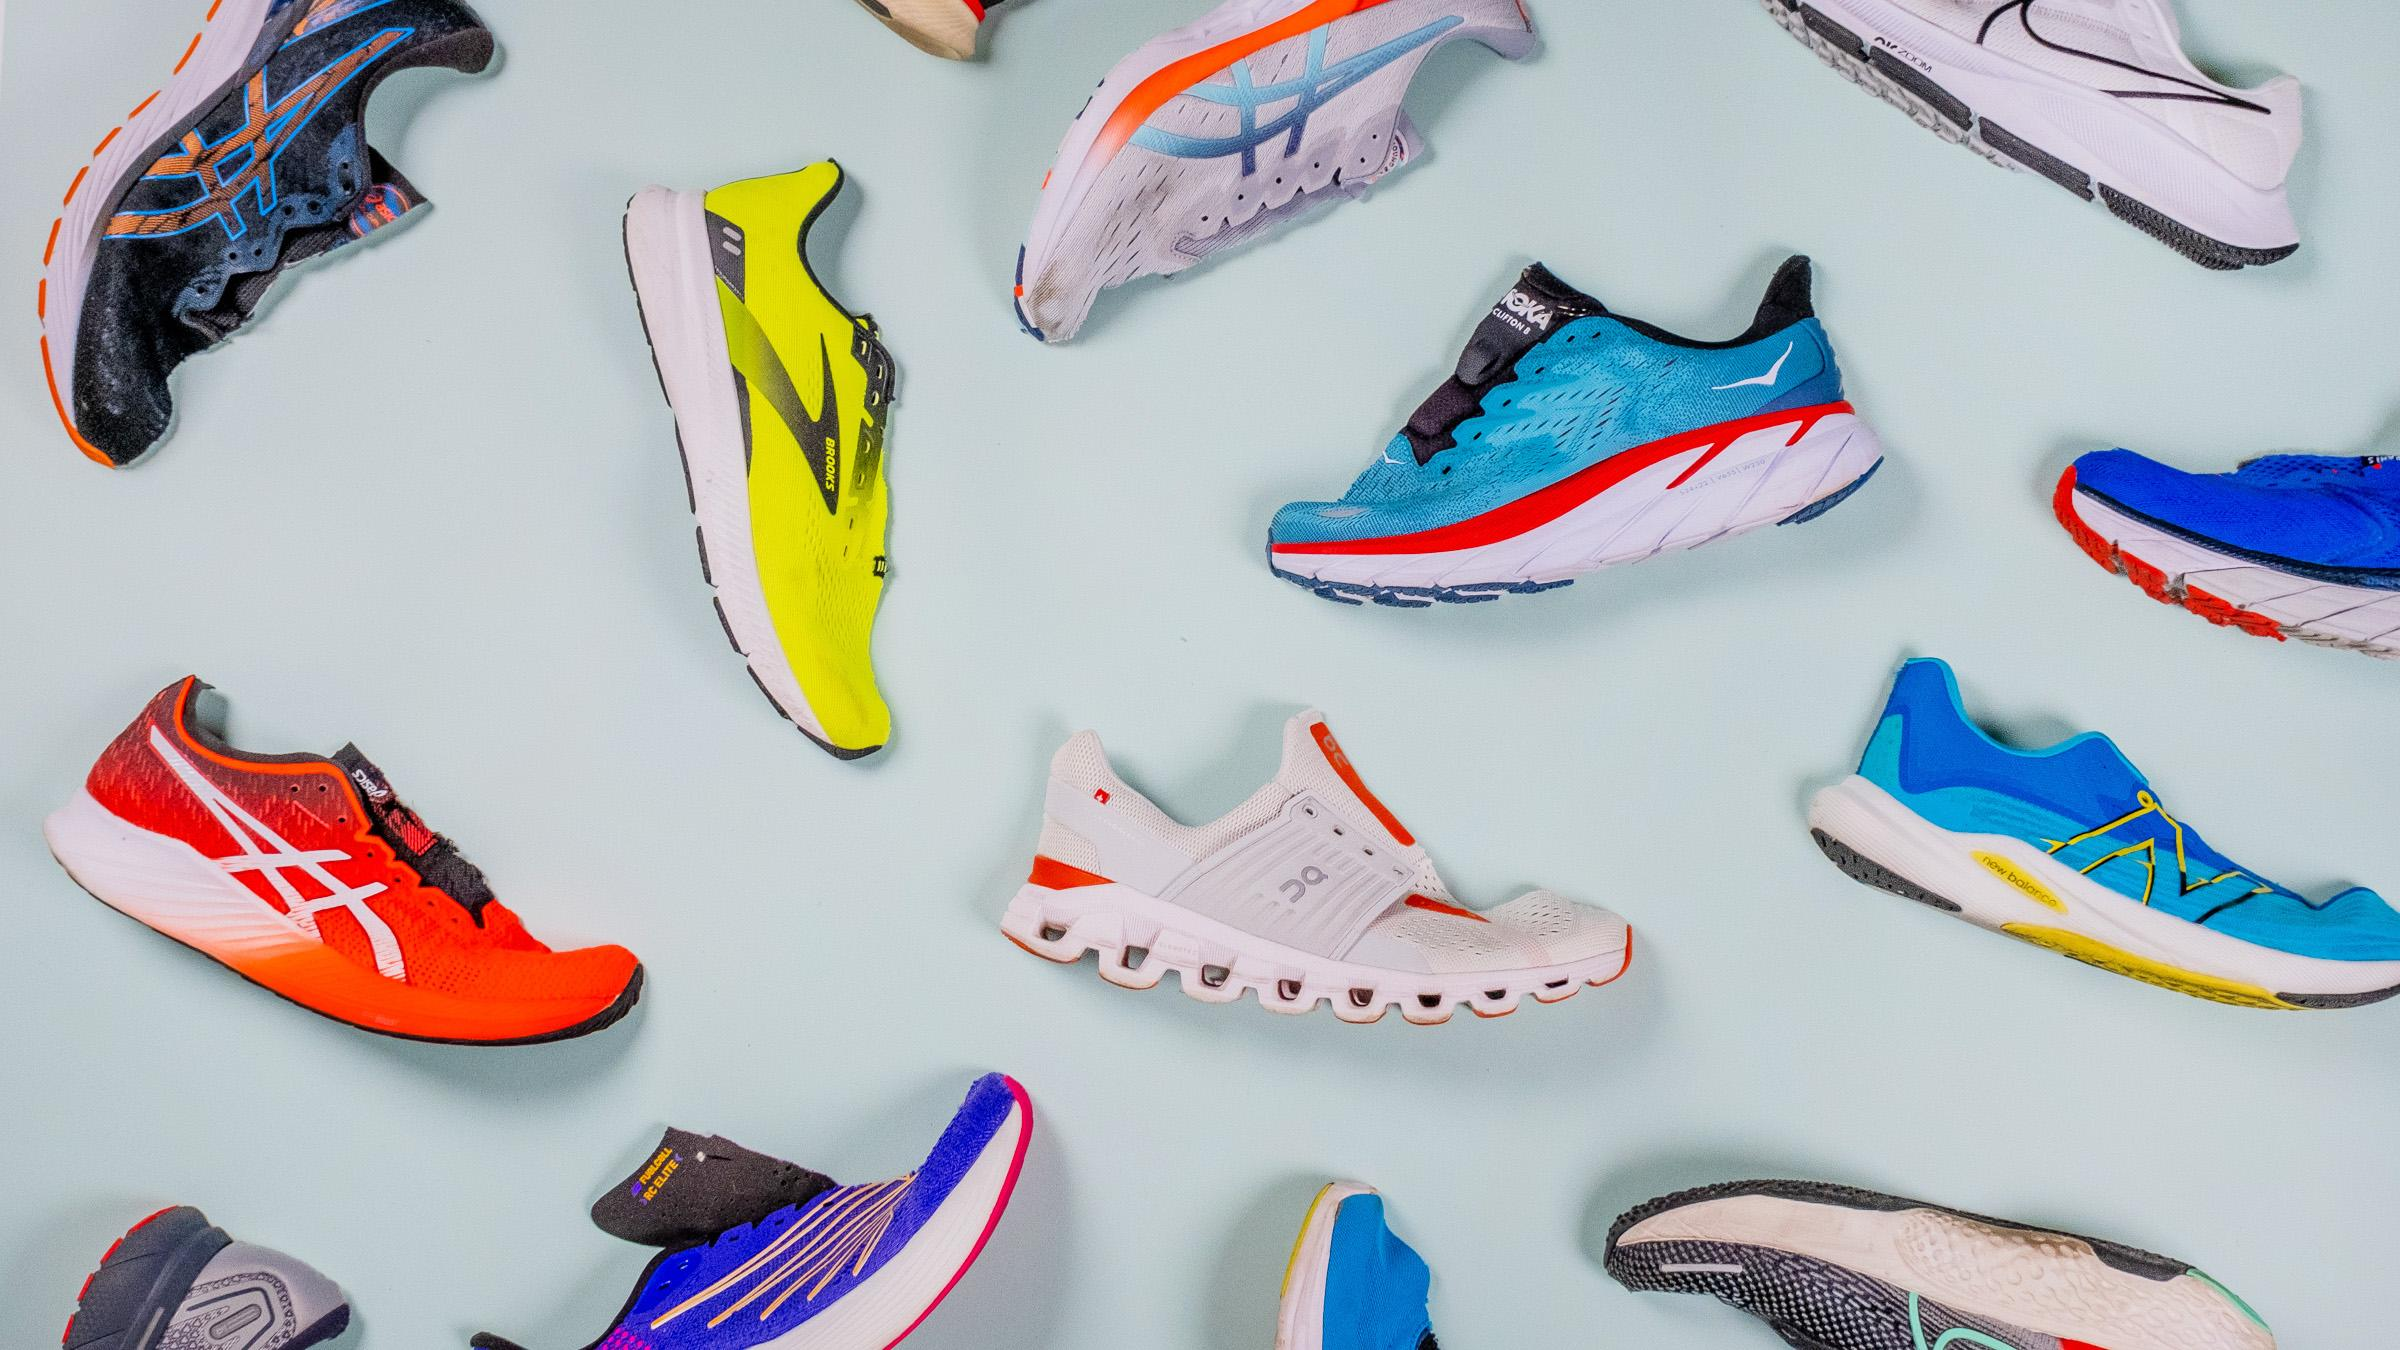 10 Best Road Running Shoes in 2021